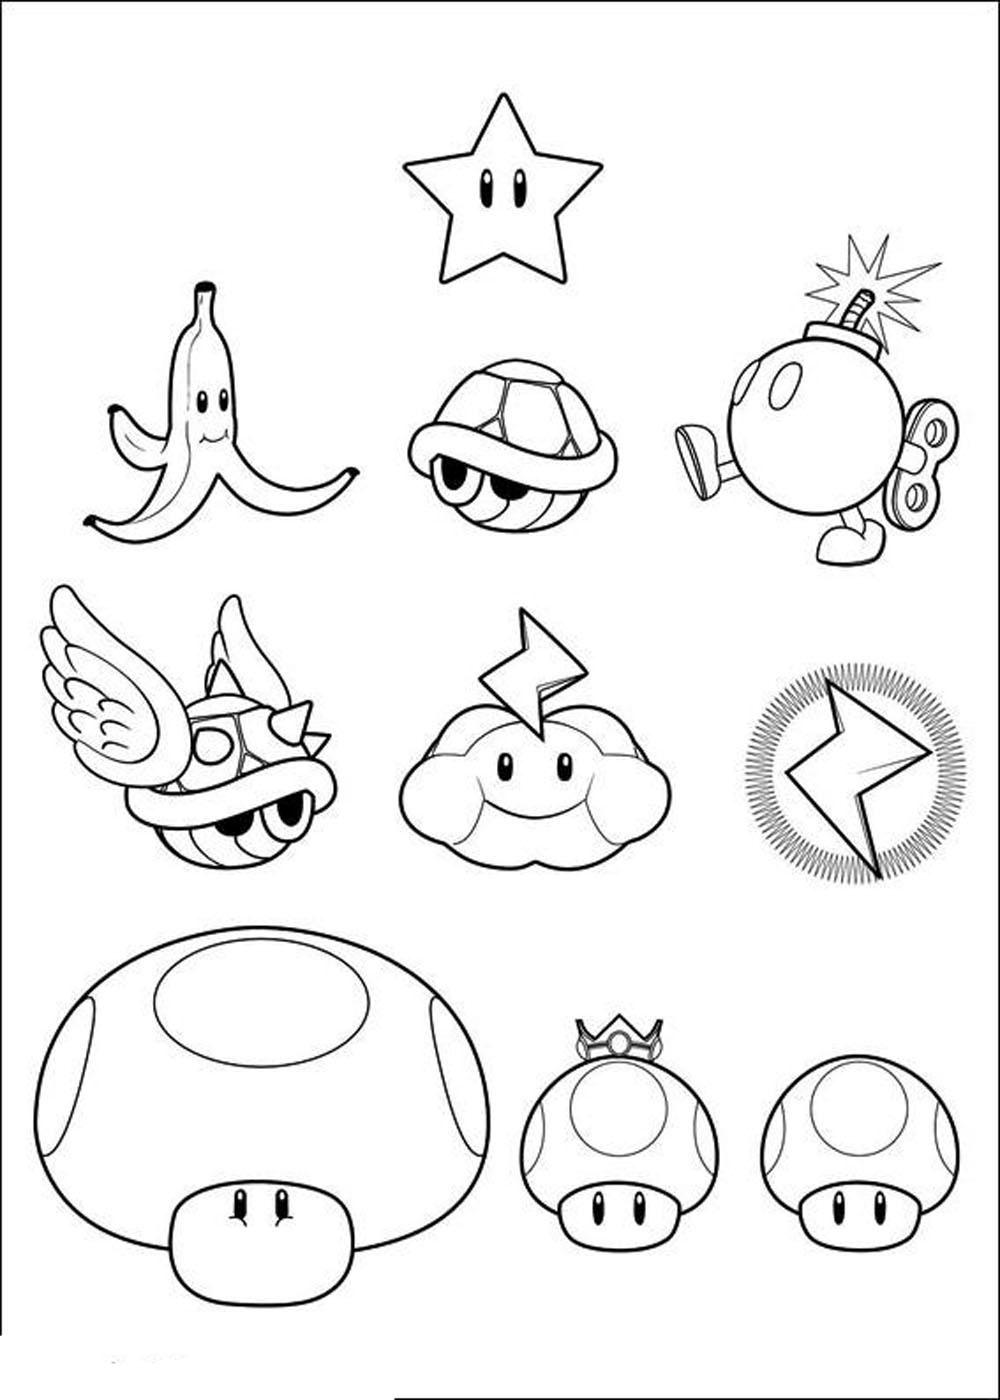 Mario Coloring Pages To Print 23 Printable Mario Coloring Pages Pictures Free Coloring Pages